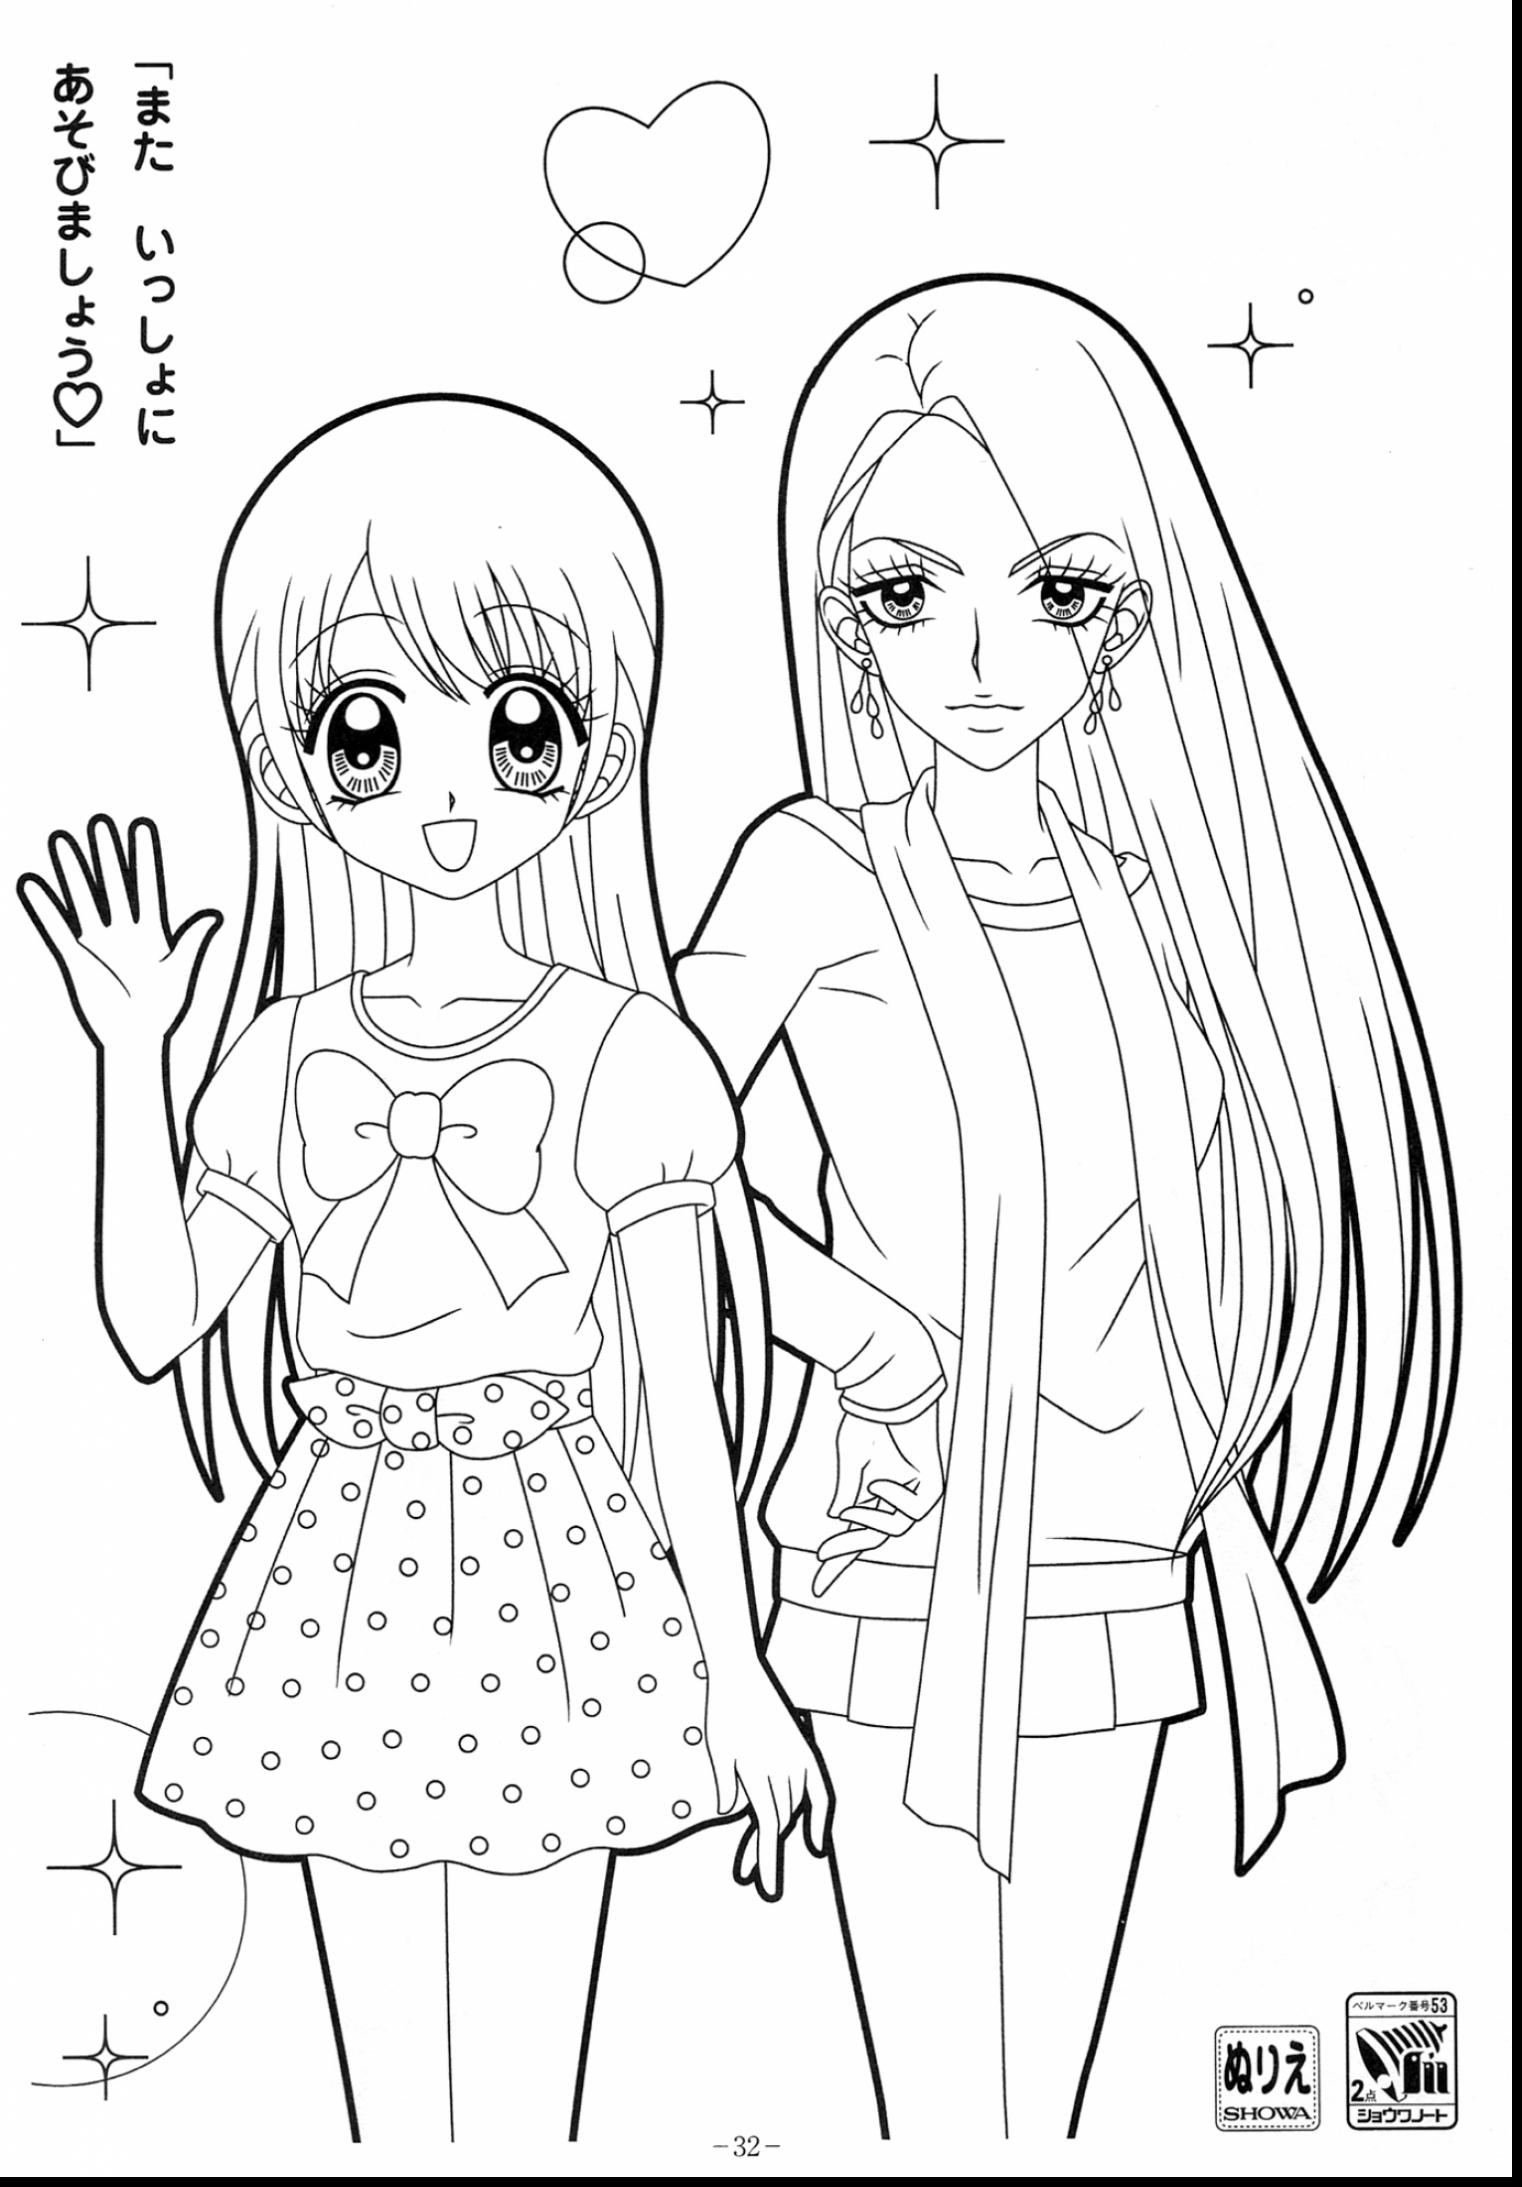 anime kawaii girl coloring pages 25 marvelous photo of cute girl coloring pages birijuscom coloring girl kawaii pages anime